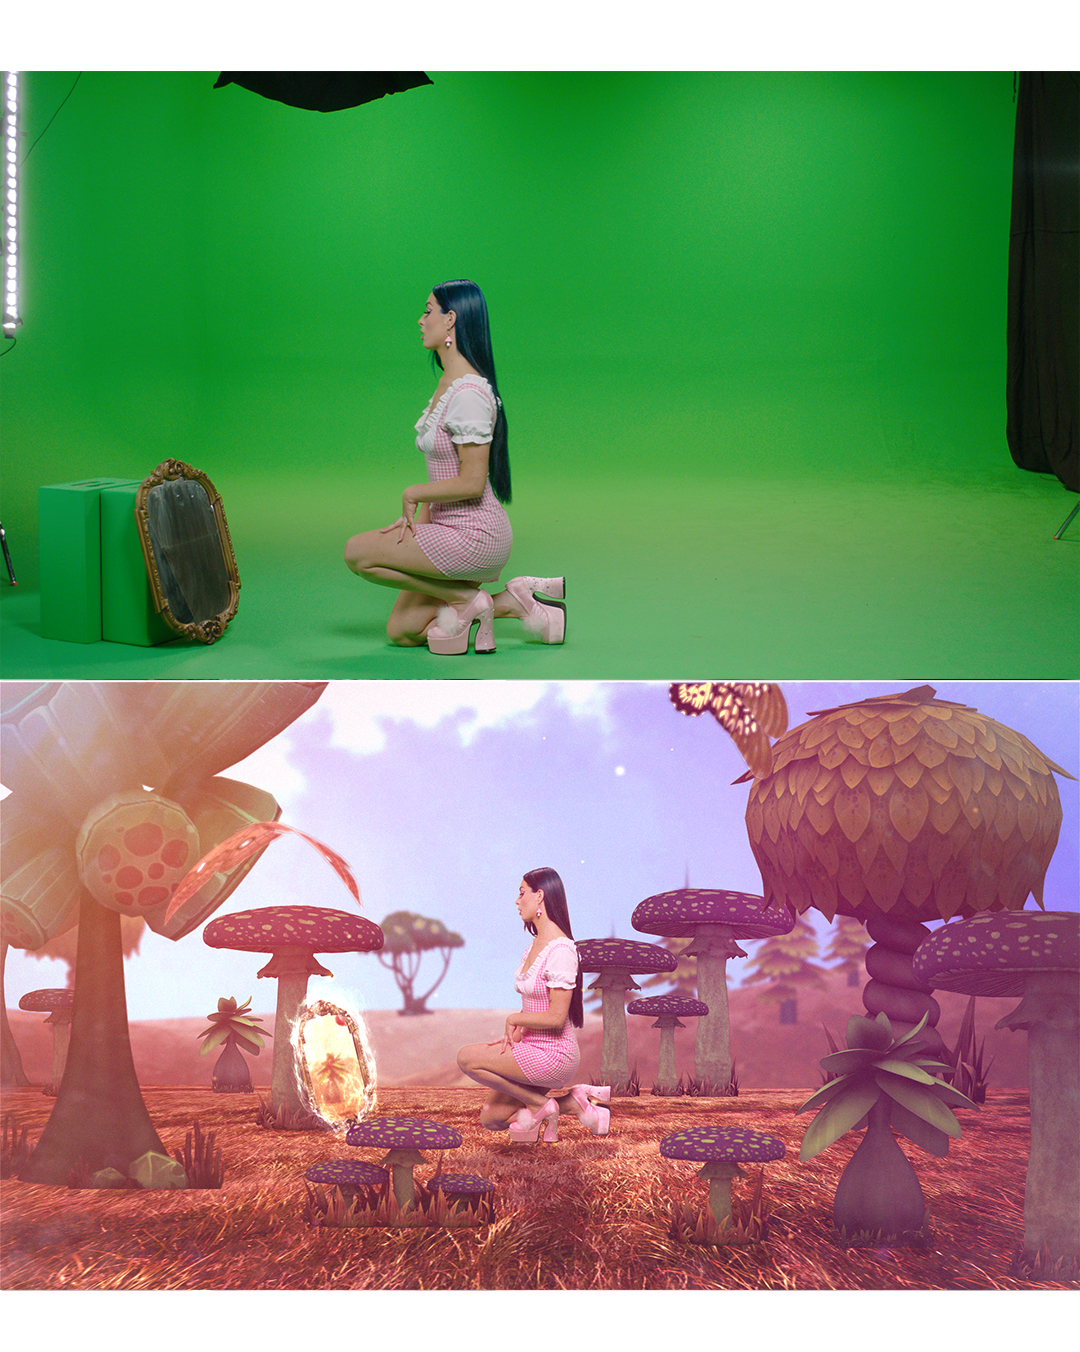 greenscreen comparison on set before and after